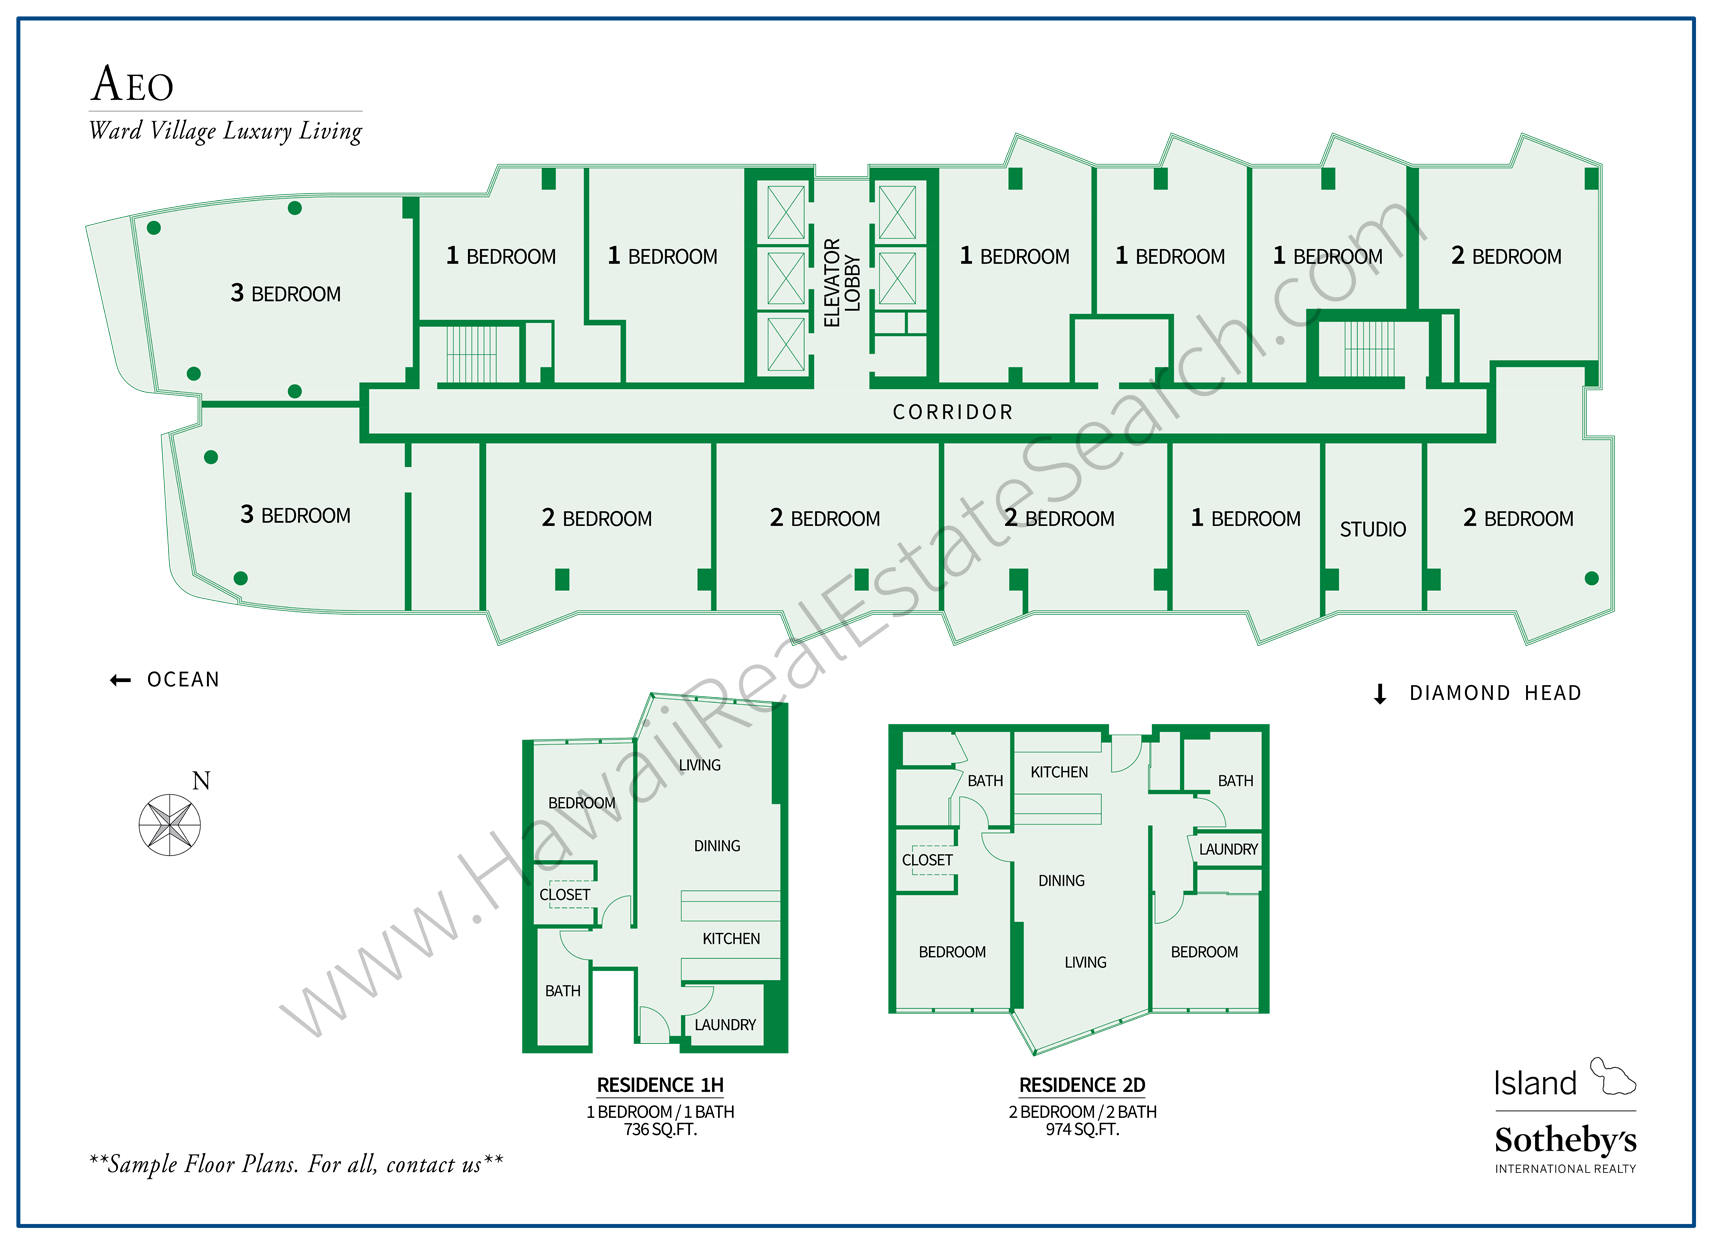 aeo map and floor plans